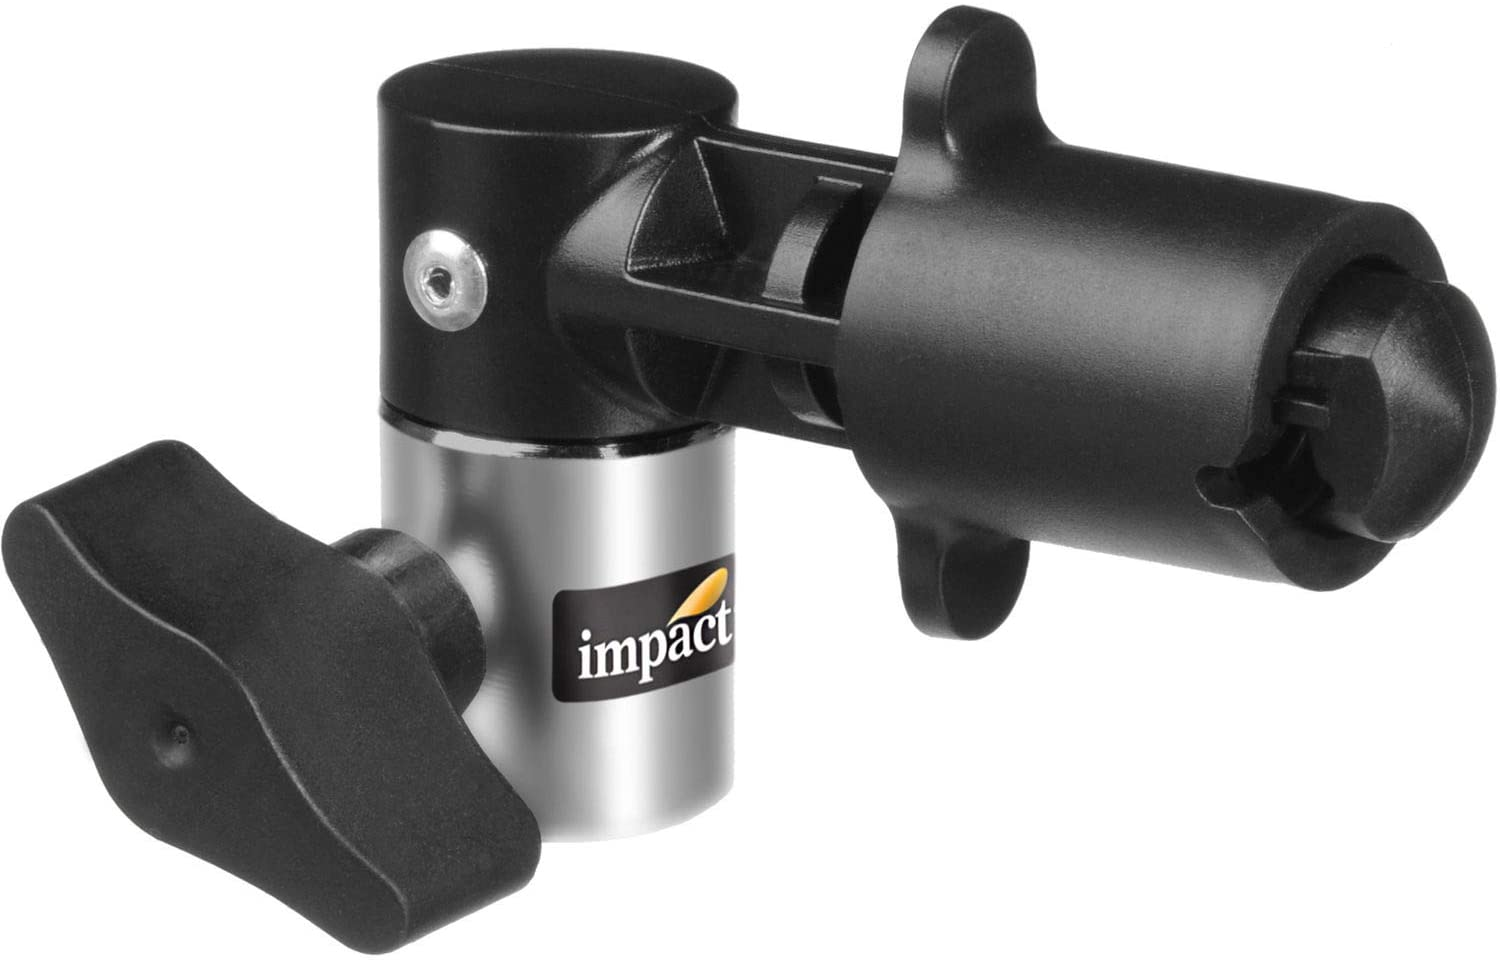 Impact Collapsible Reflector Holder